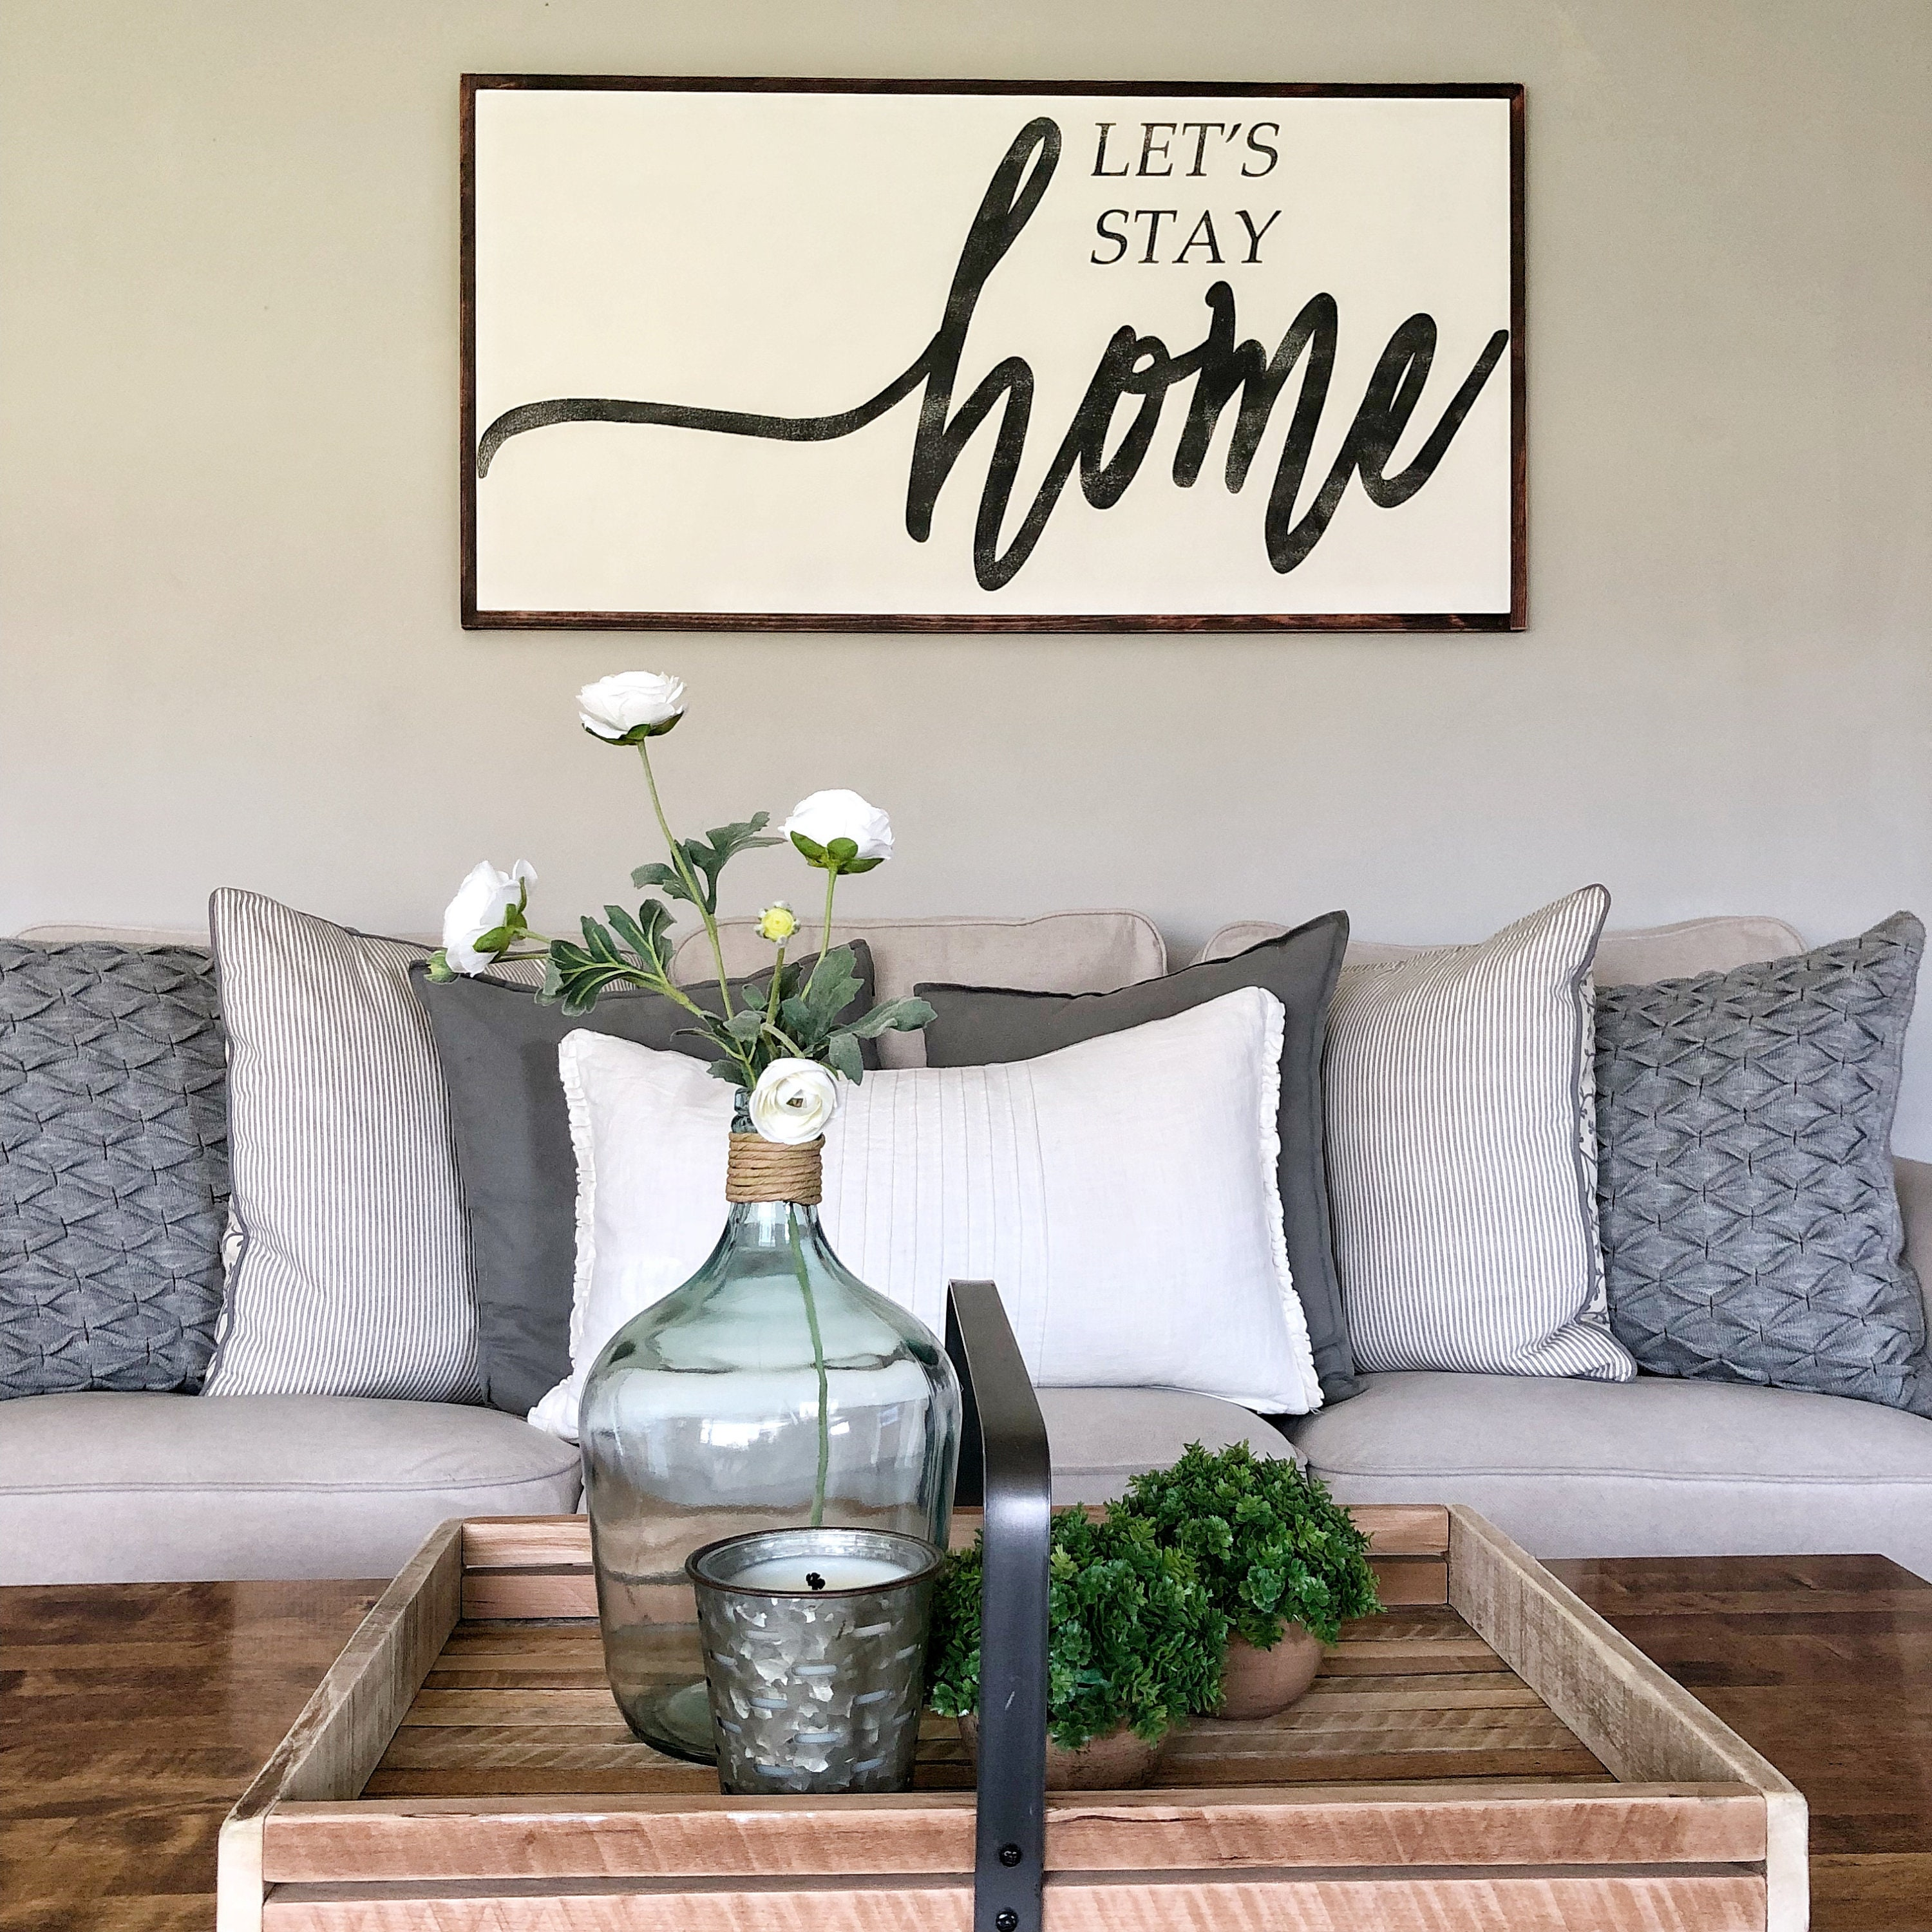 Farmhouse Signs Wood Signs Wood Signs For Home Decor Farmhouse Decor Wood Signs With Quotes Let/'s Stay Home sign